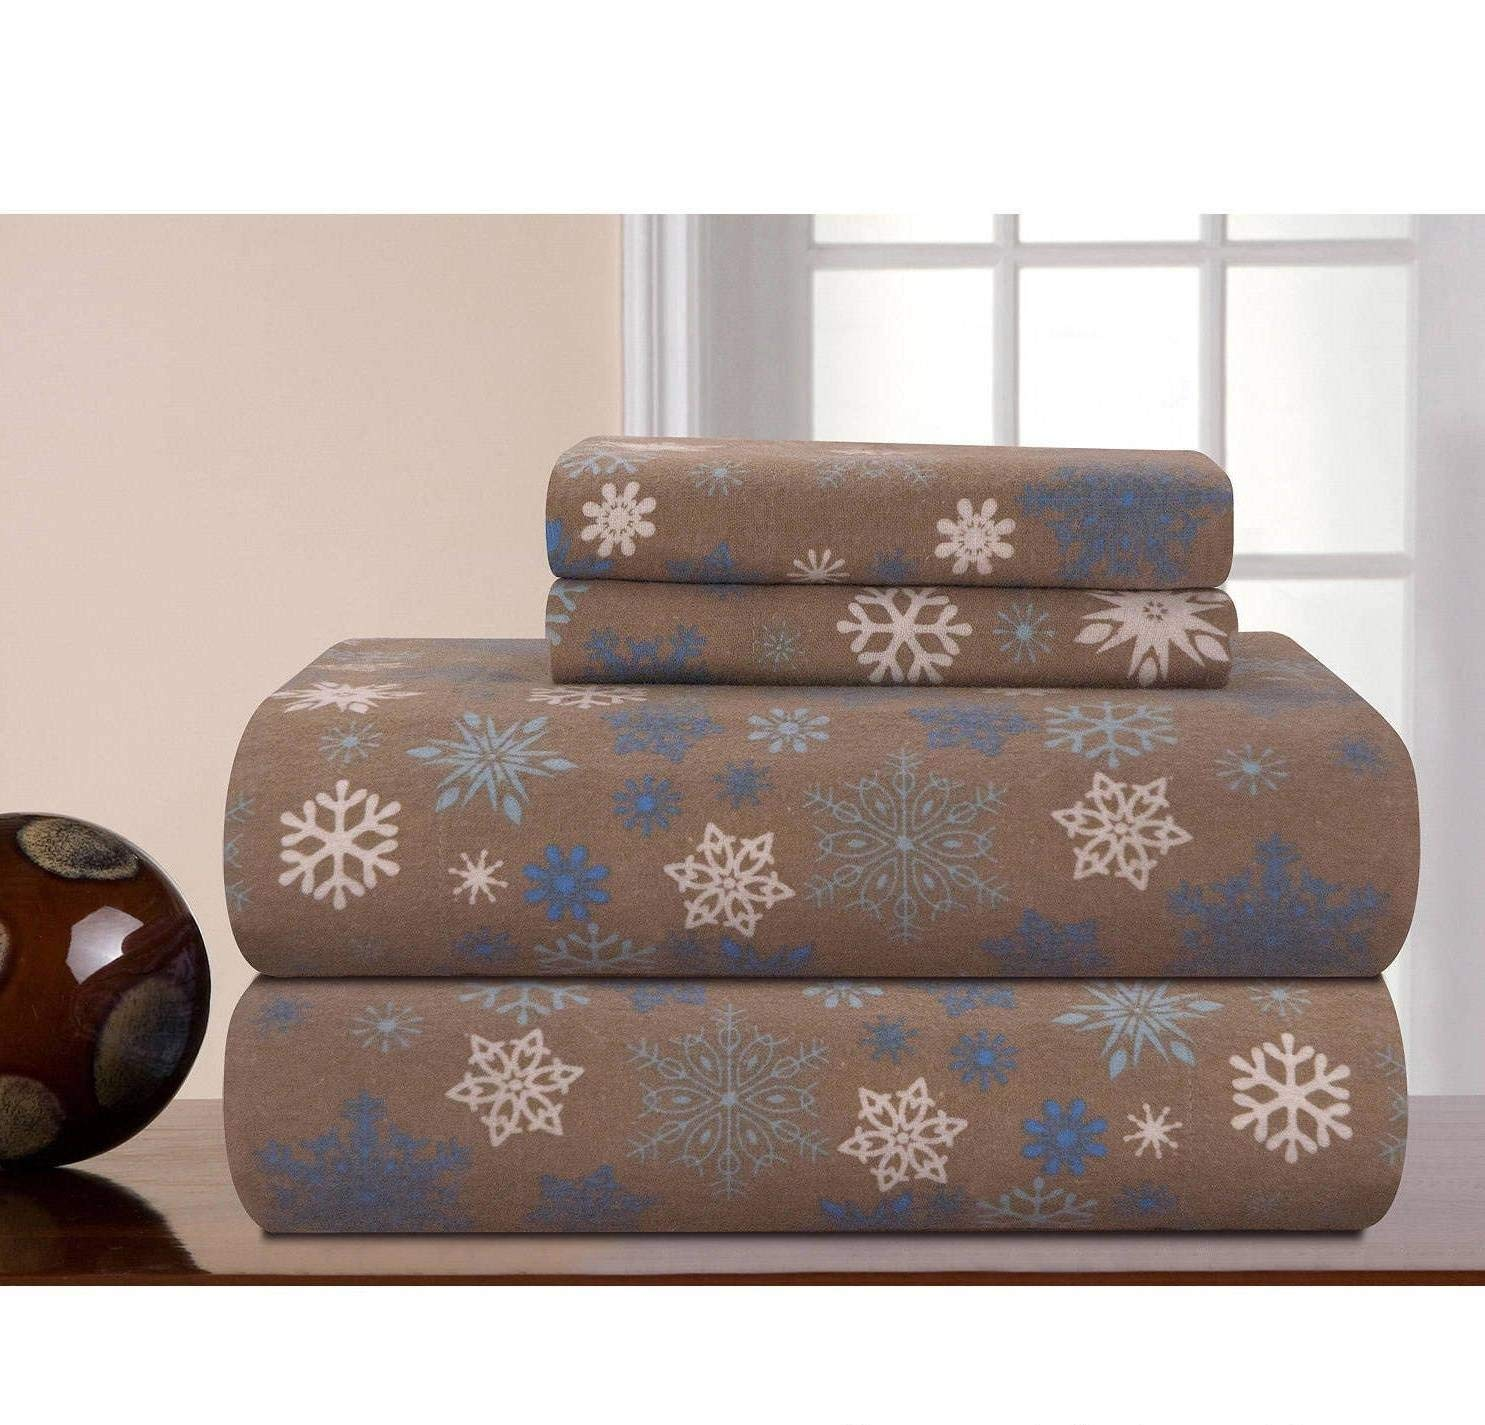 MISC 4pc Dusty Brown Snowflakes Theme Sheets Cal King Set, Elegant Winter Season Bedding, Fully Elasticized Fitted,, Cotton Flannel, Unisex, Deep Pocket, Falling Snow